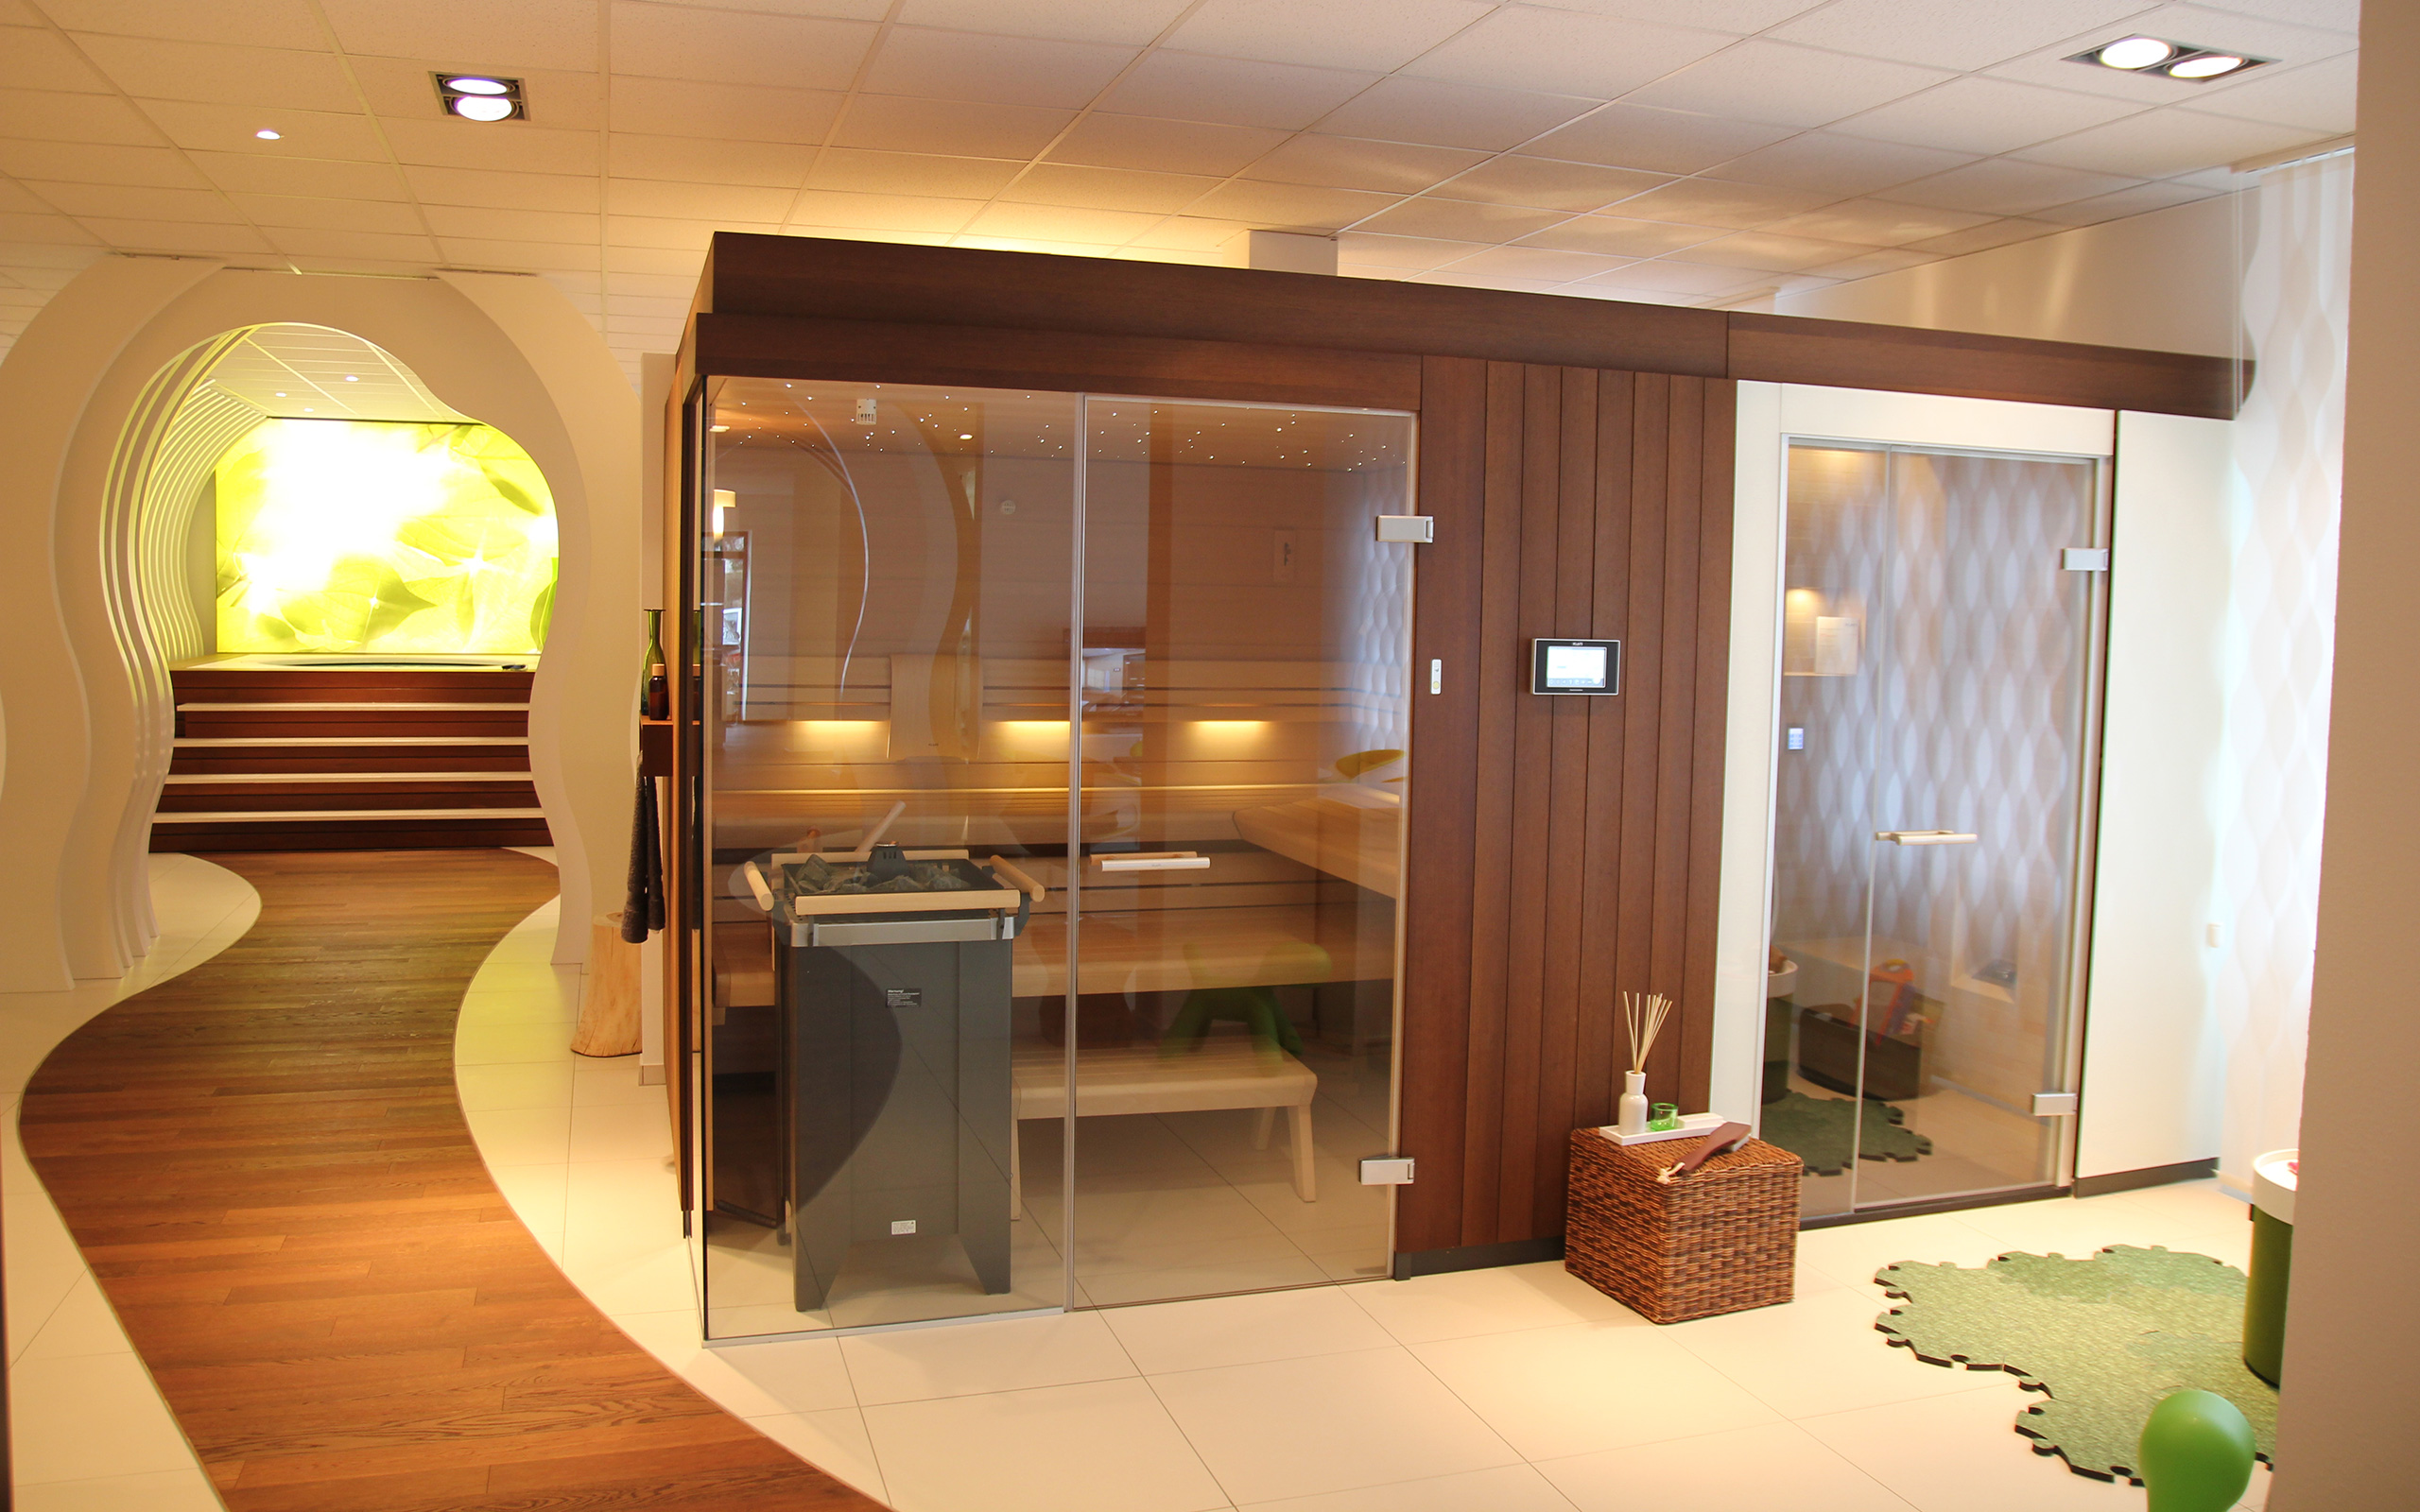 sauna showroom in cologne. Black Bedroom Furniture Sets. Home Design Ideas